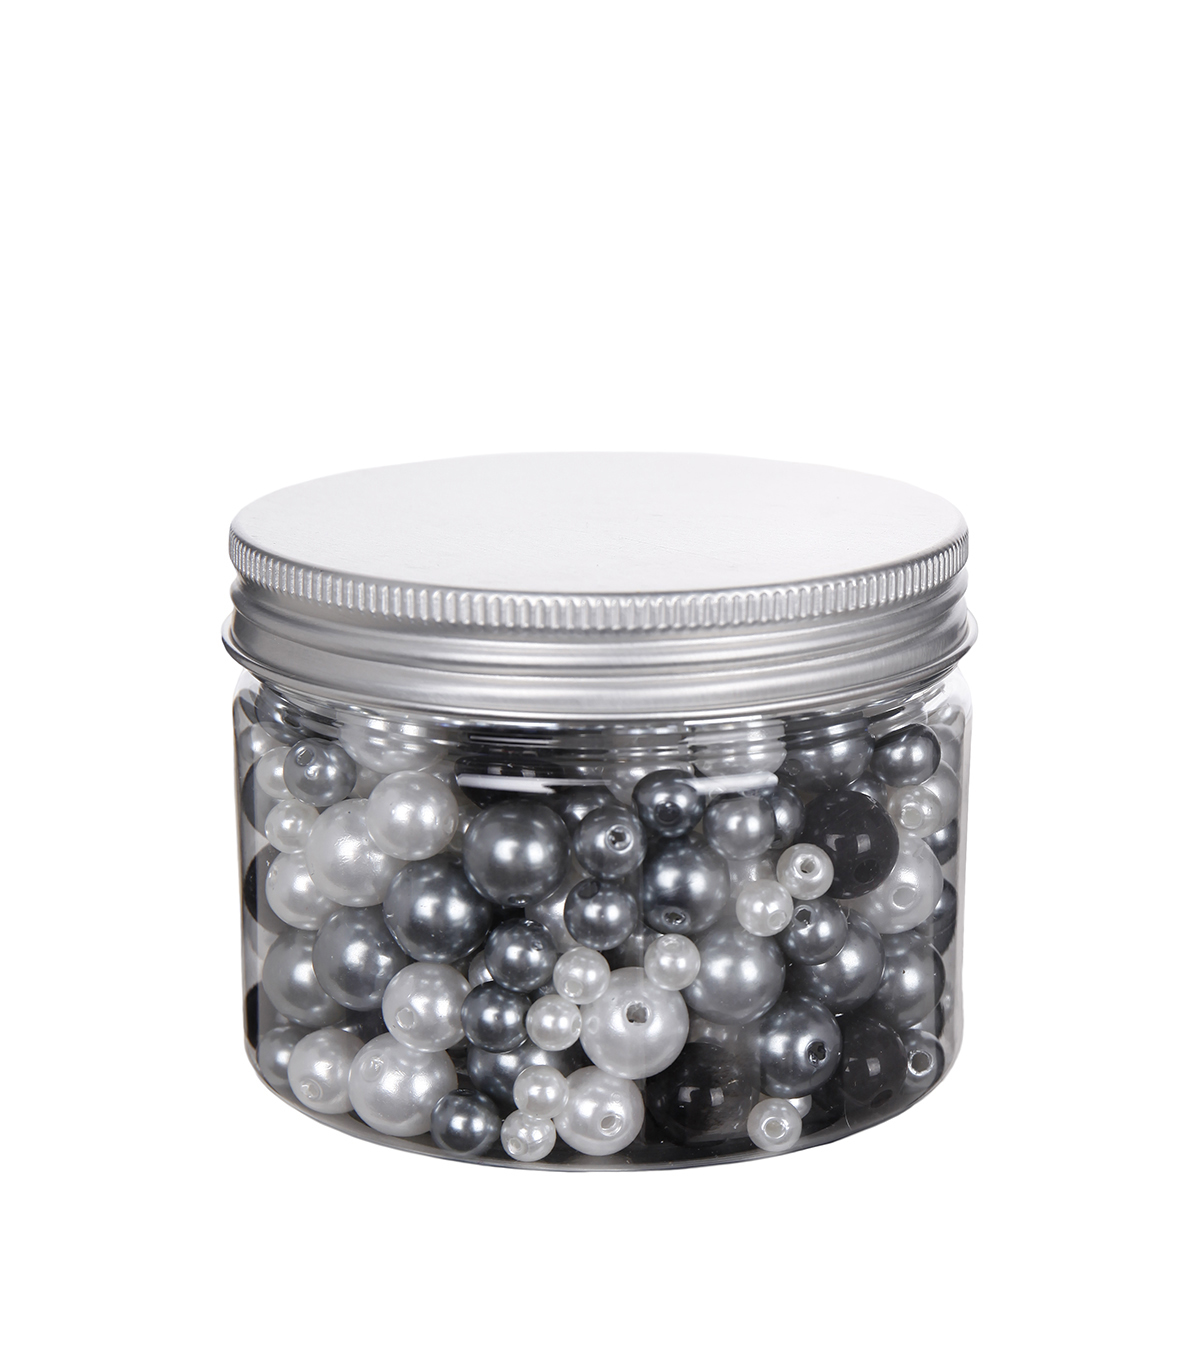 hildie & jo™ Assorted Fashion Beads in Plastic Jar-Black & White